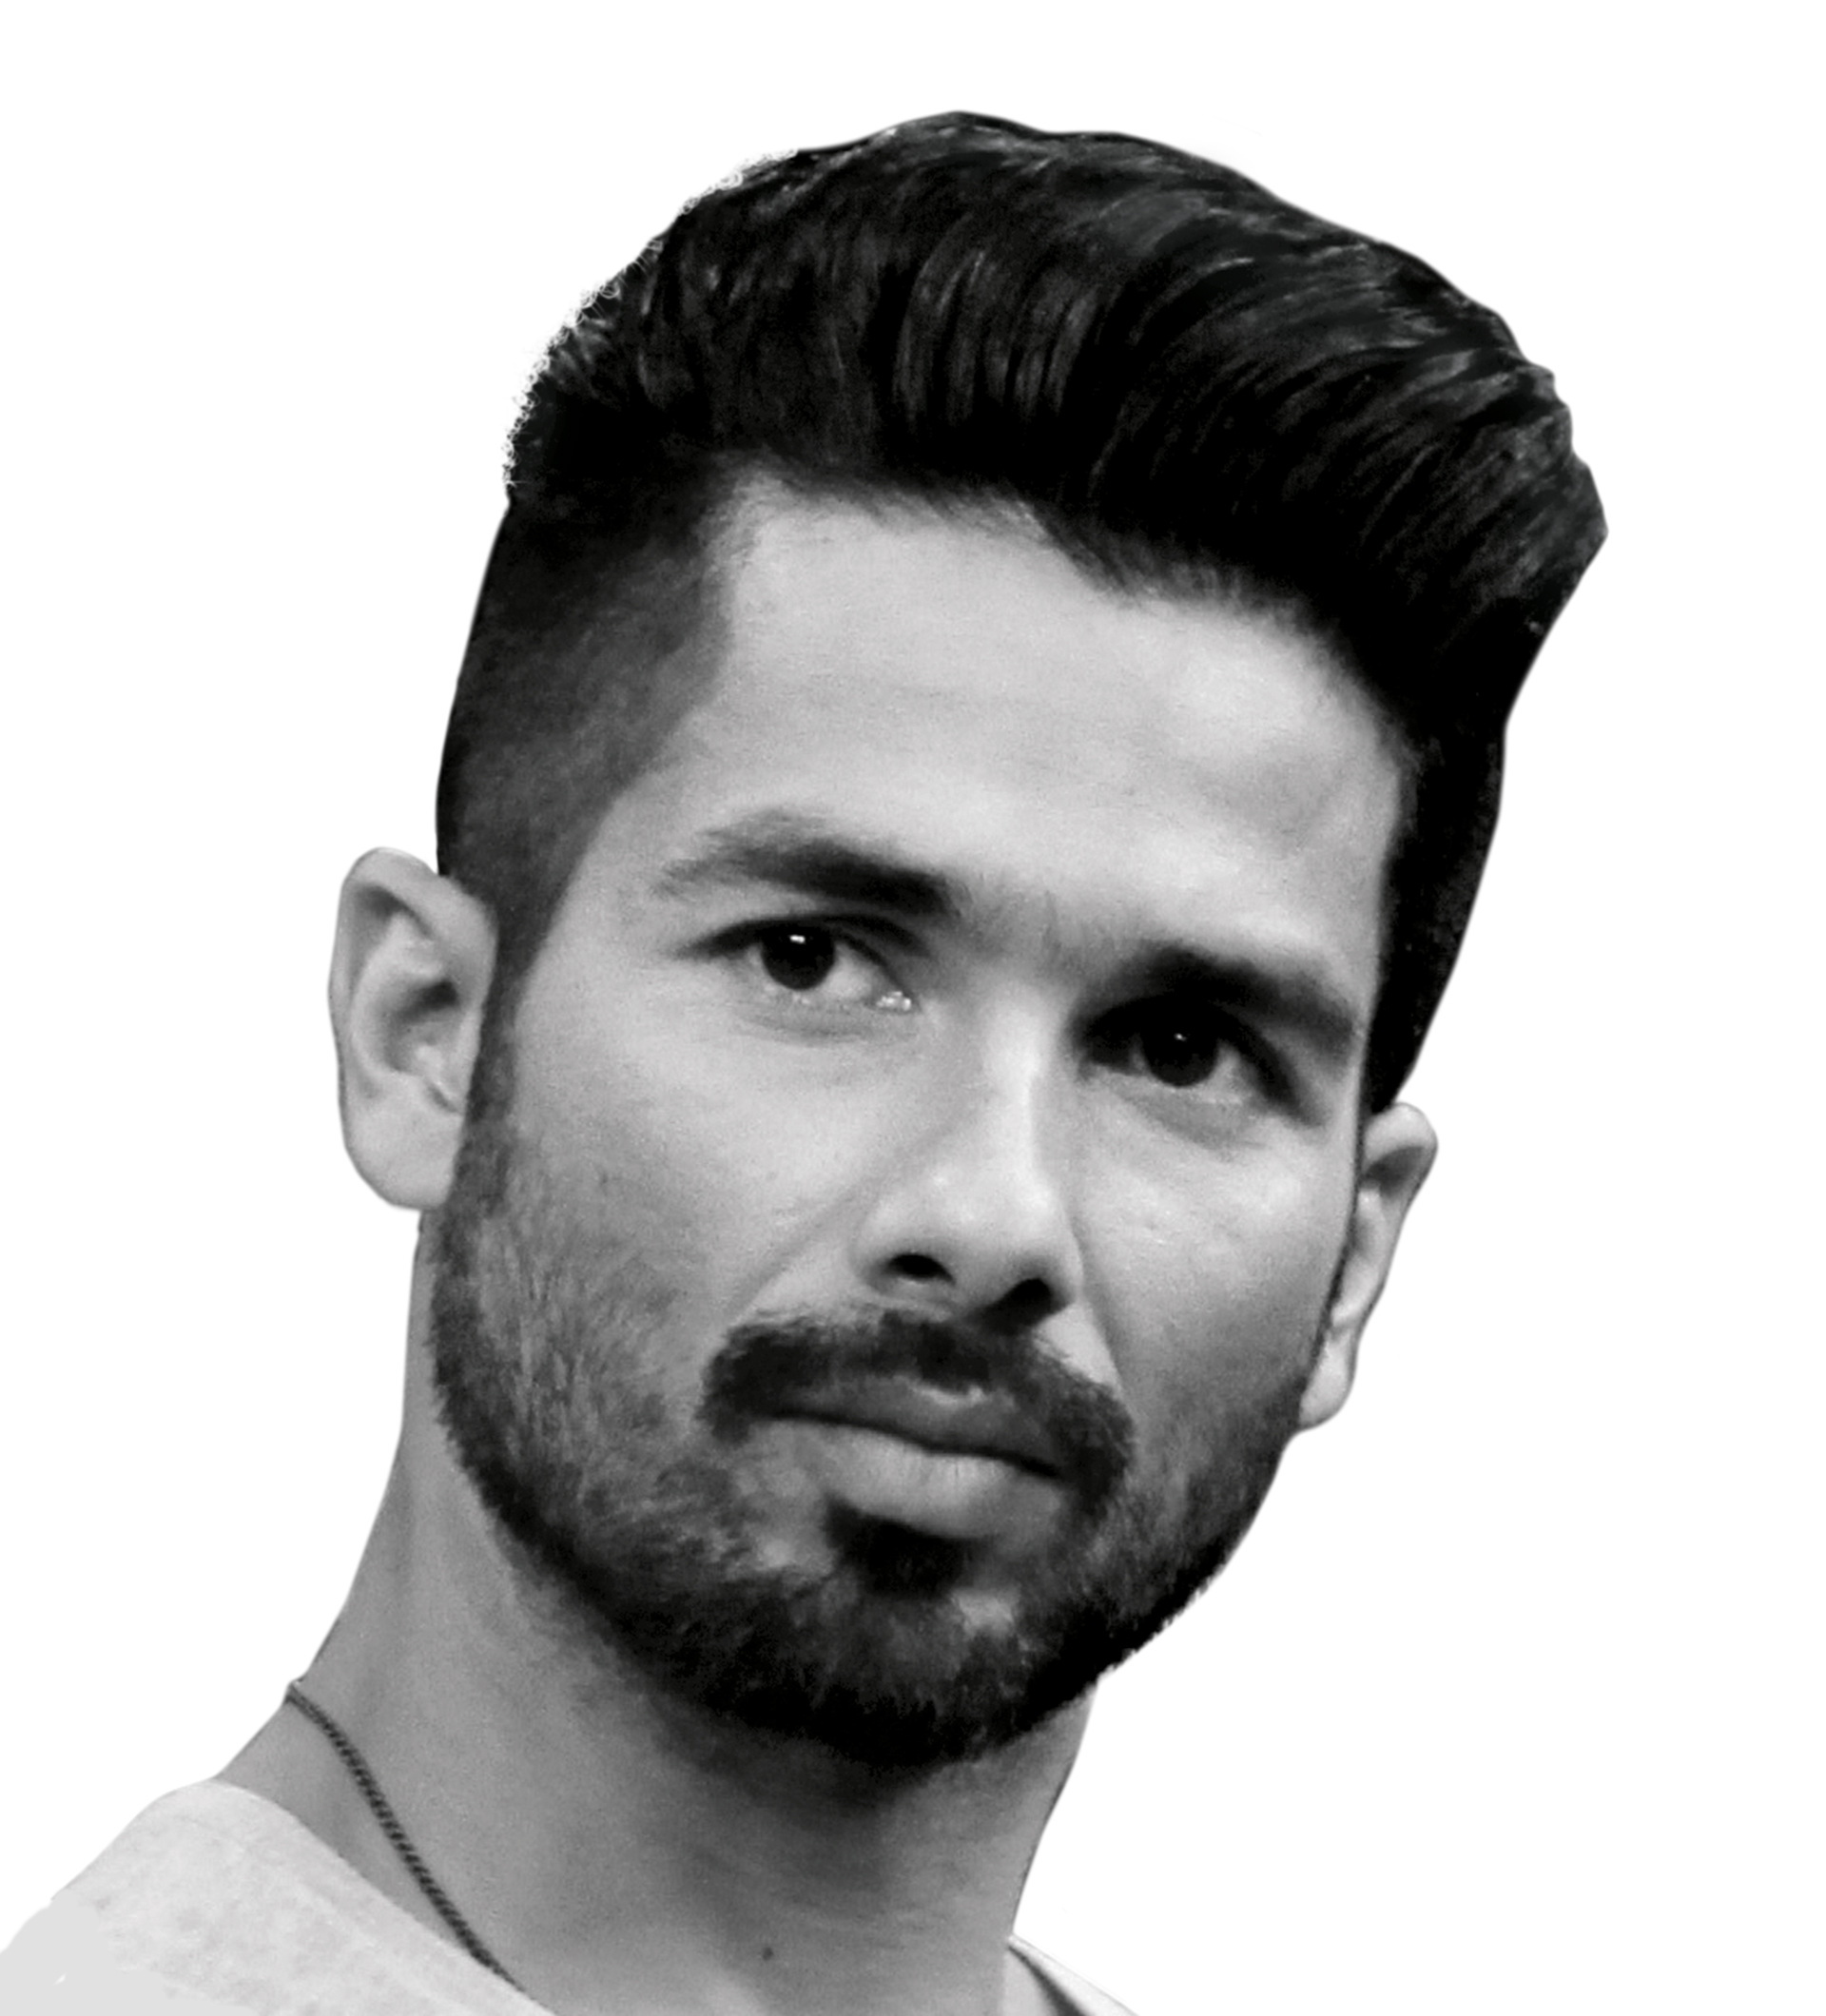 hair style man indian 2016 - all about style